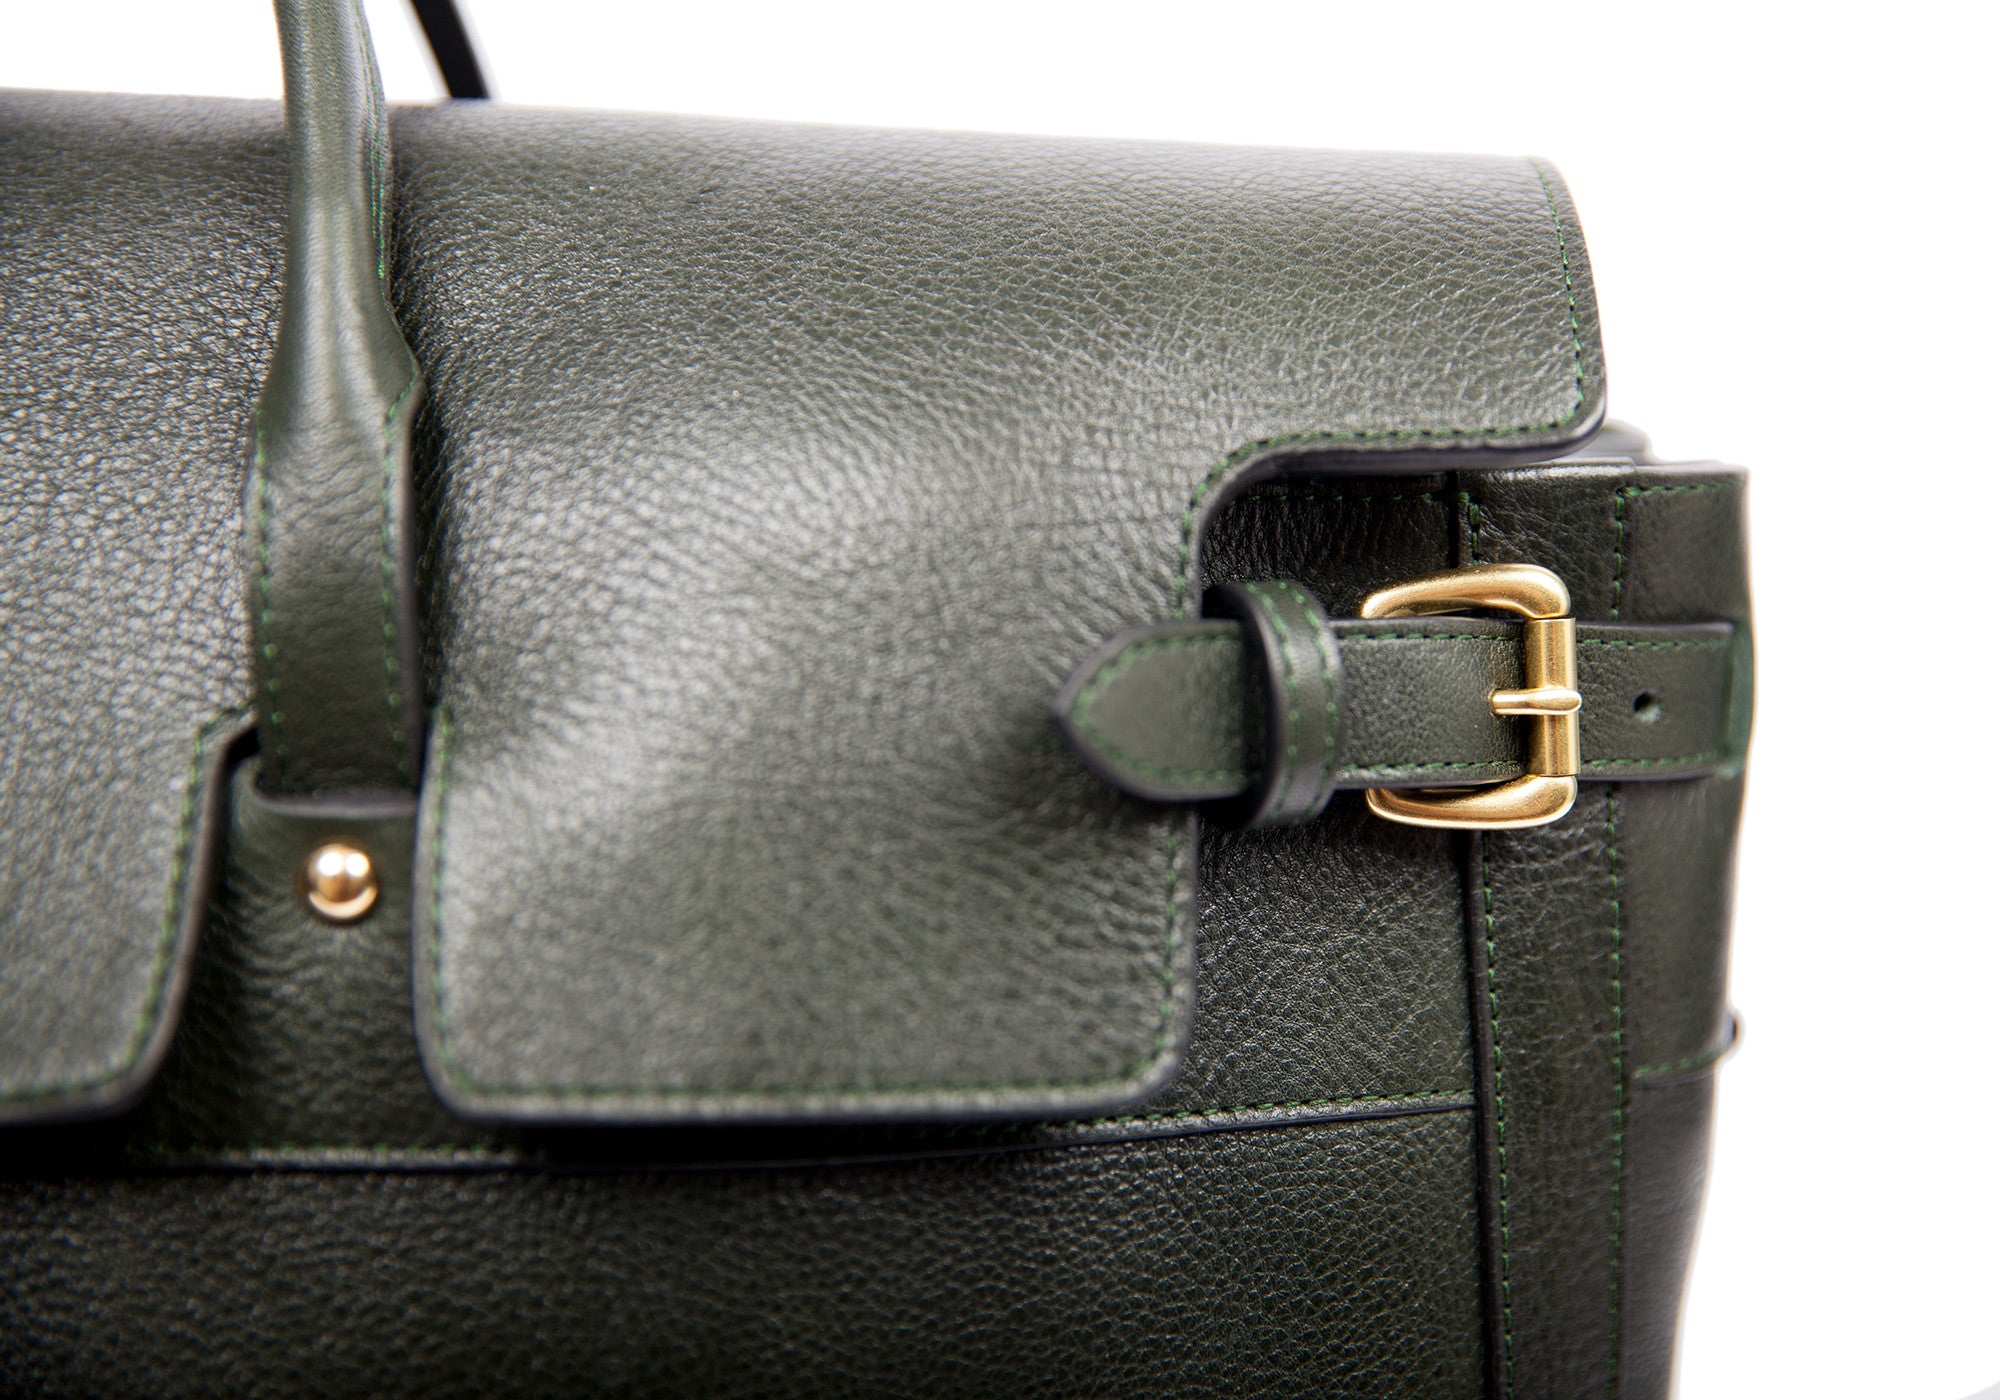 Leather Strap and Buckle of Leather Day Tote Green